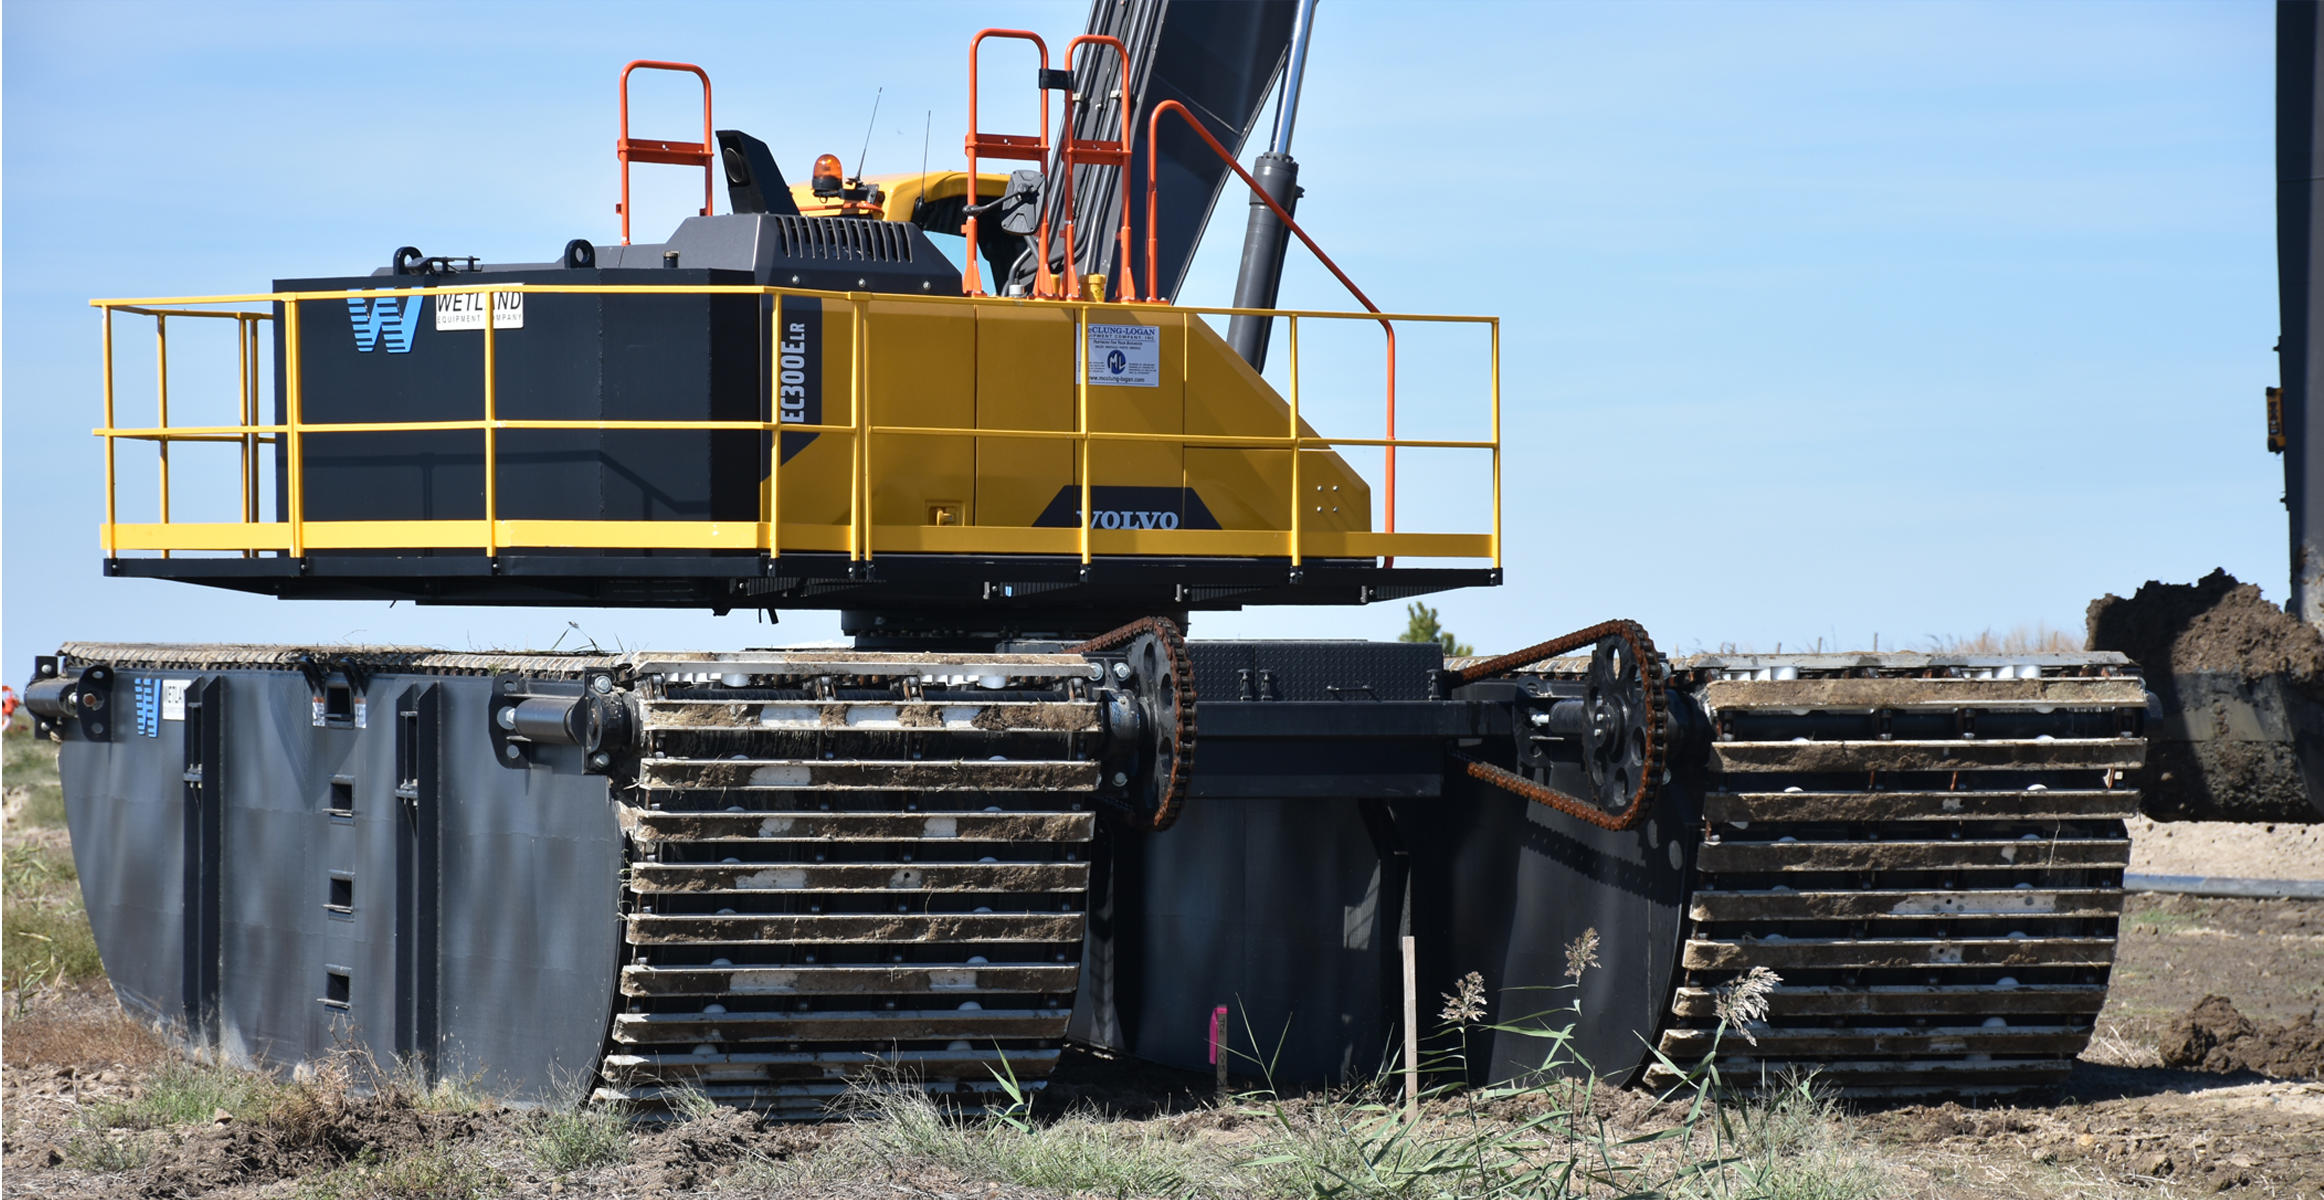 The Volvo EC300E excavator's standard crawler tracks were replaced with custom flotation pads, enabling it to operate in the cell without sinking.